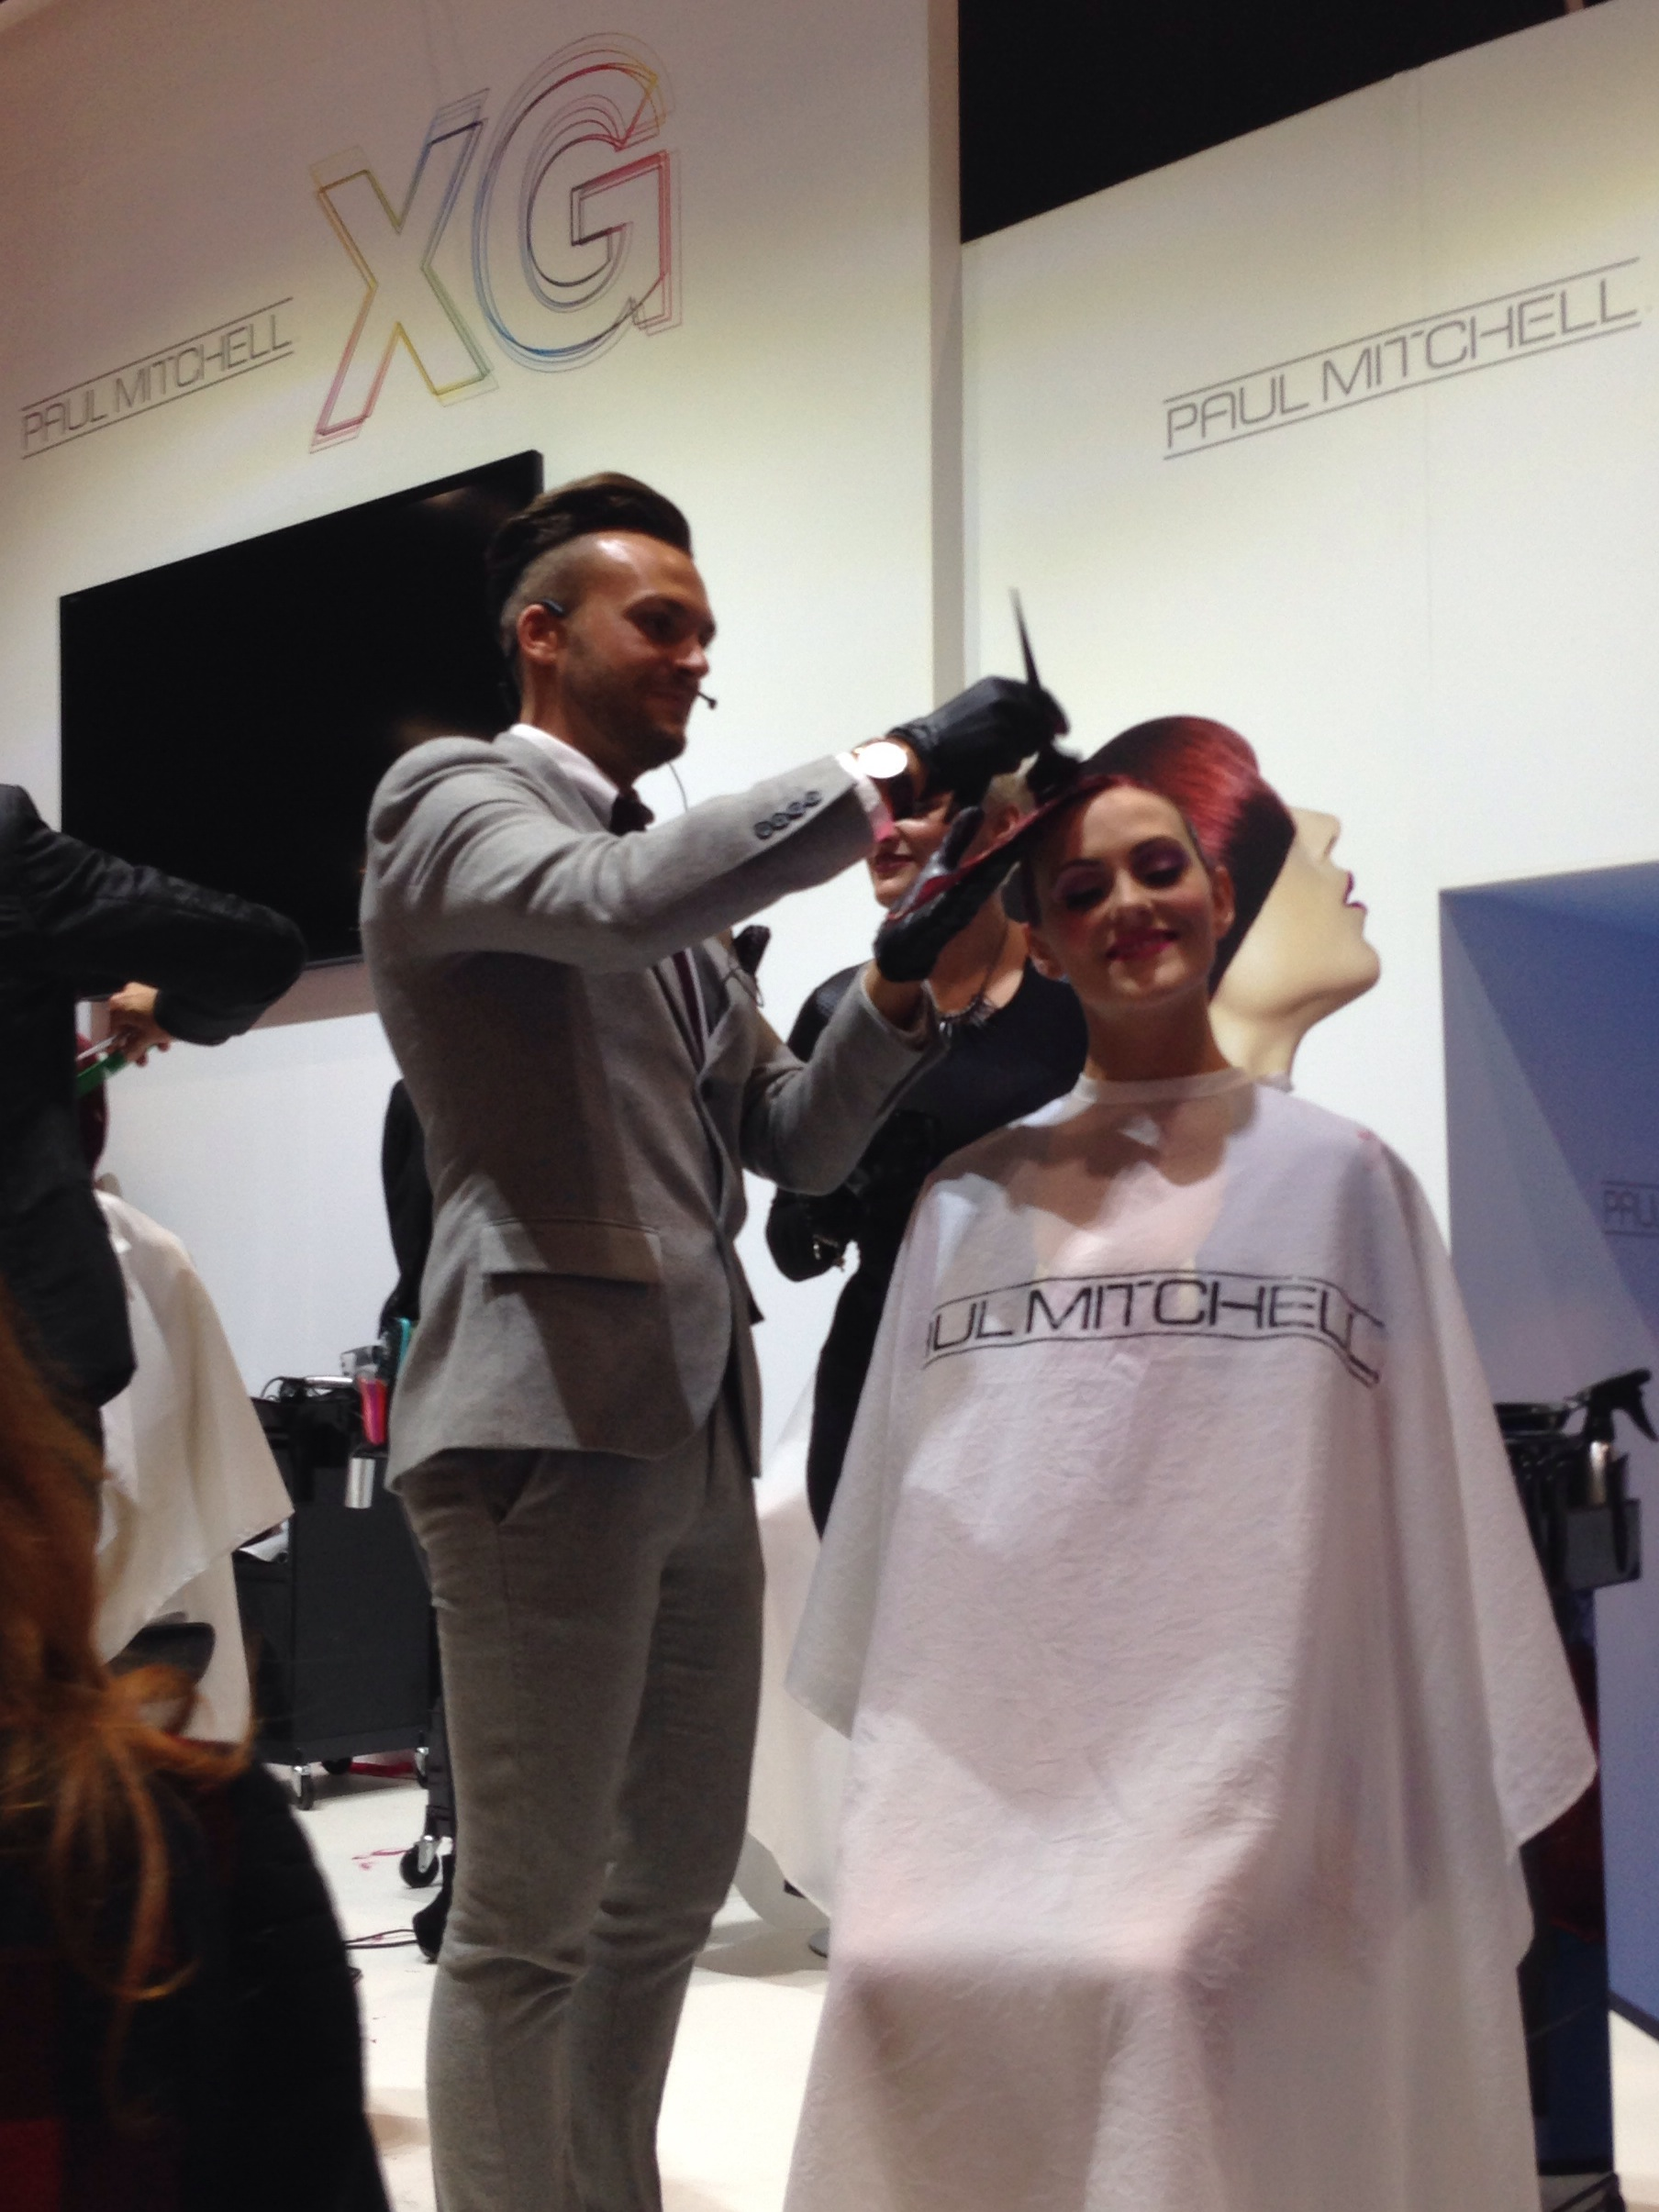 london-hair-expo-2013-paul-mitchel.jpg